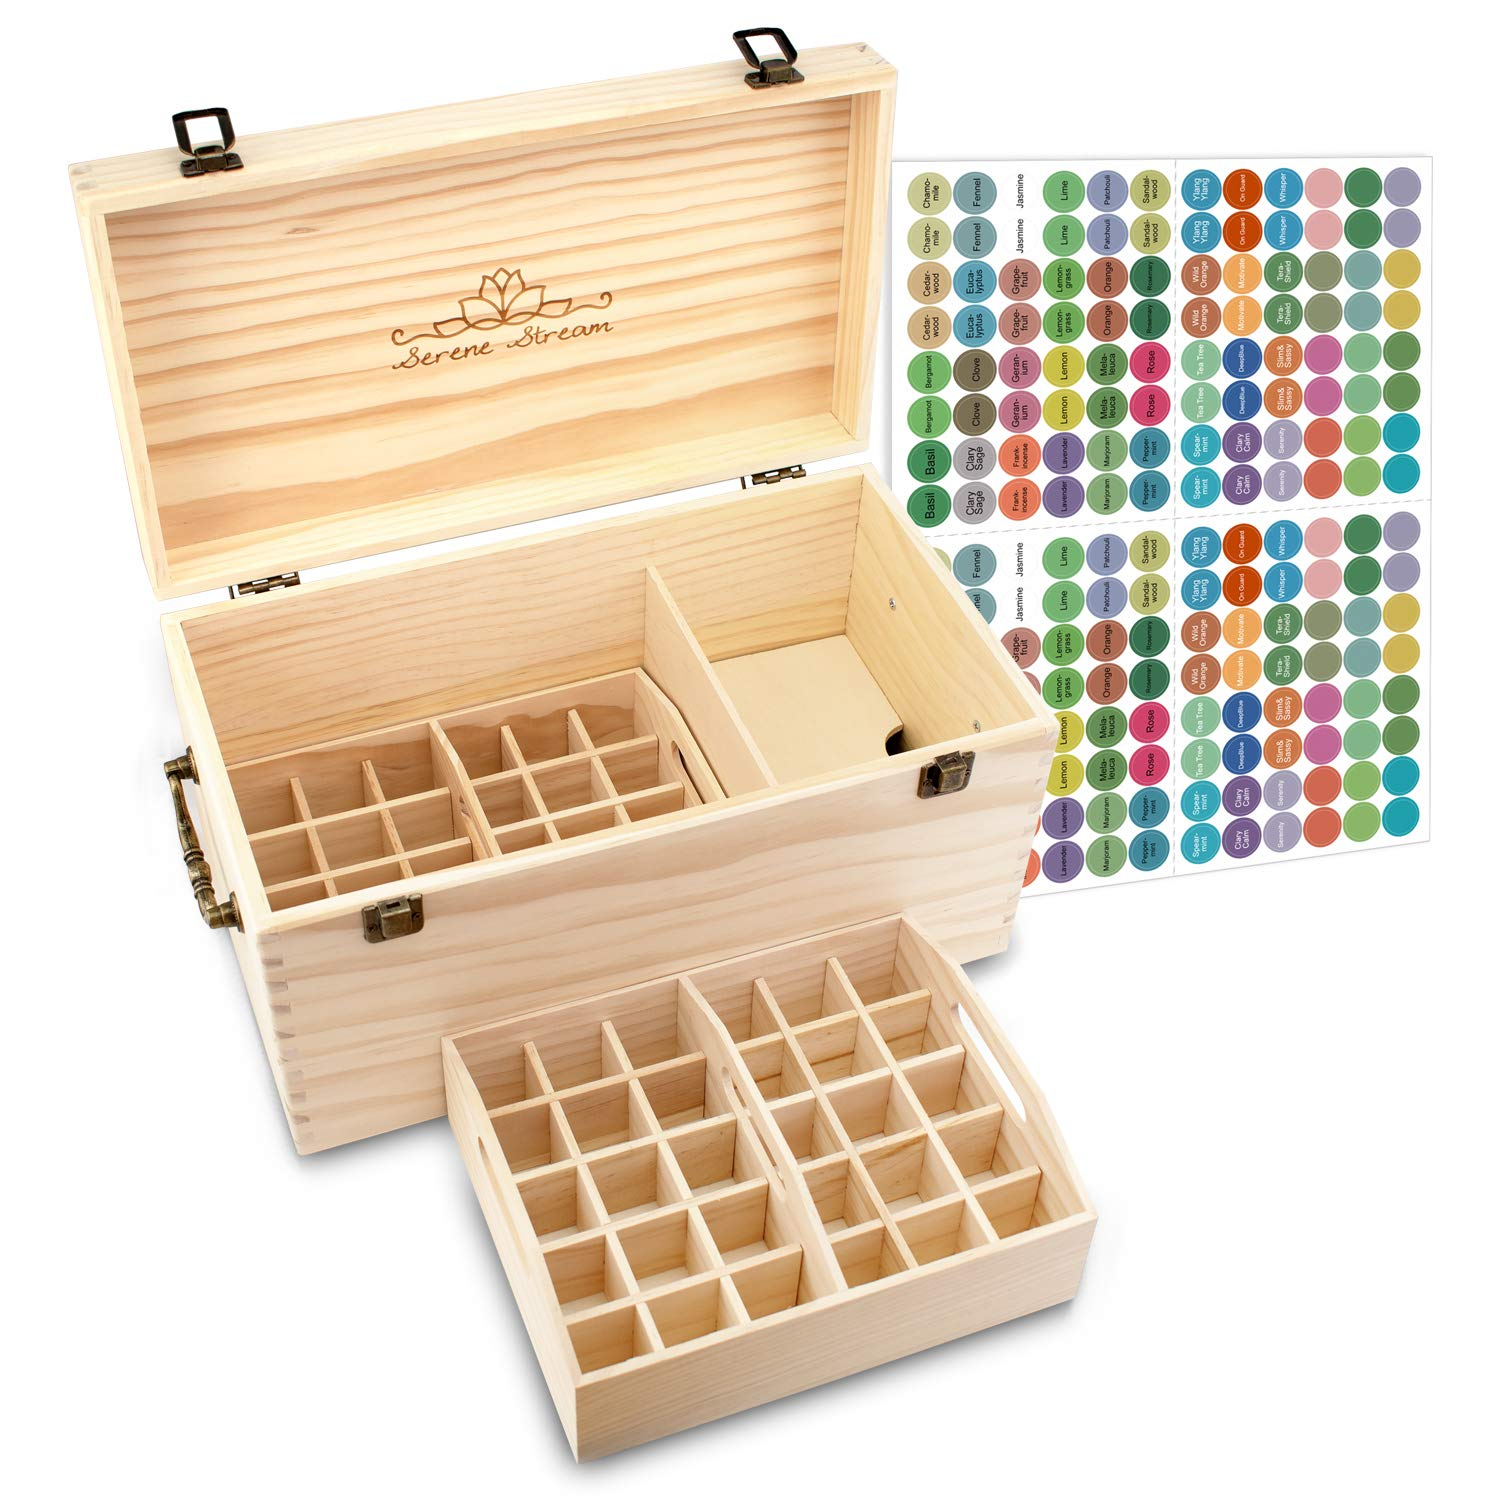 Serene Stream 64-Slot Essential Oil Storage Box - Removable Dividers - 2 Stack-able Inner Trays - Premium Solution Fits 5ml, 10ml, 15ml, 30ml Bottles, Tubes, Accessories and More EO Products